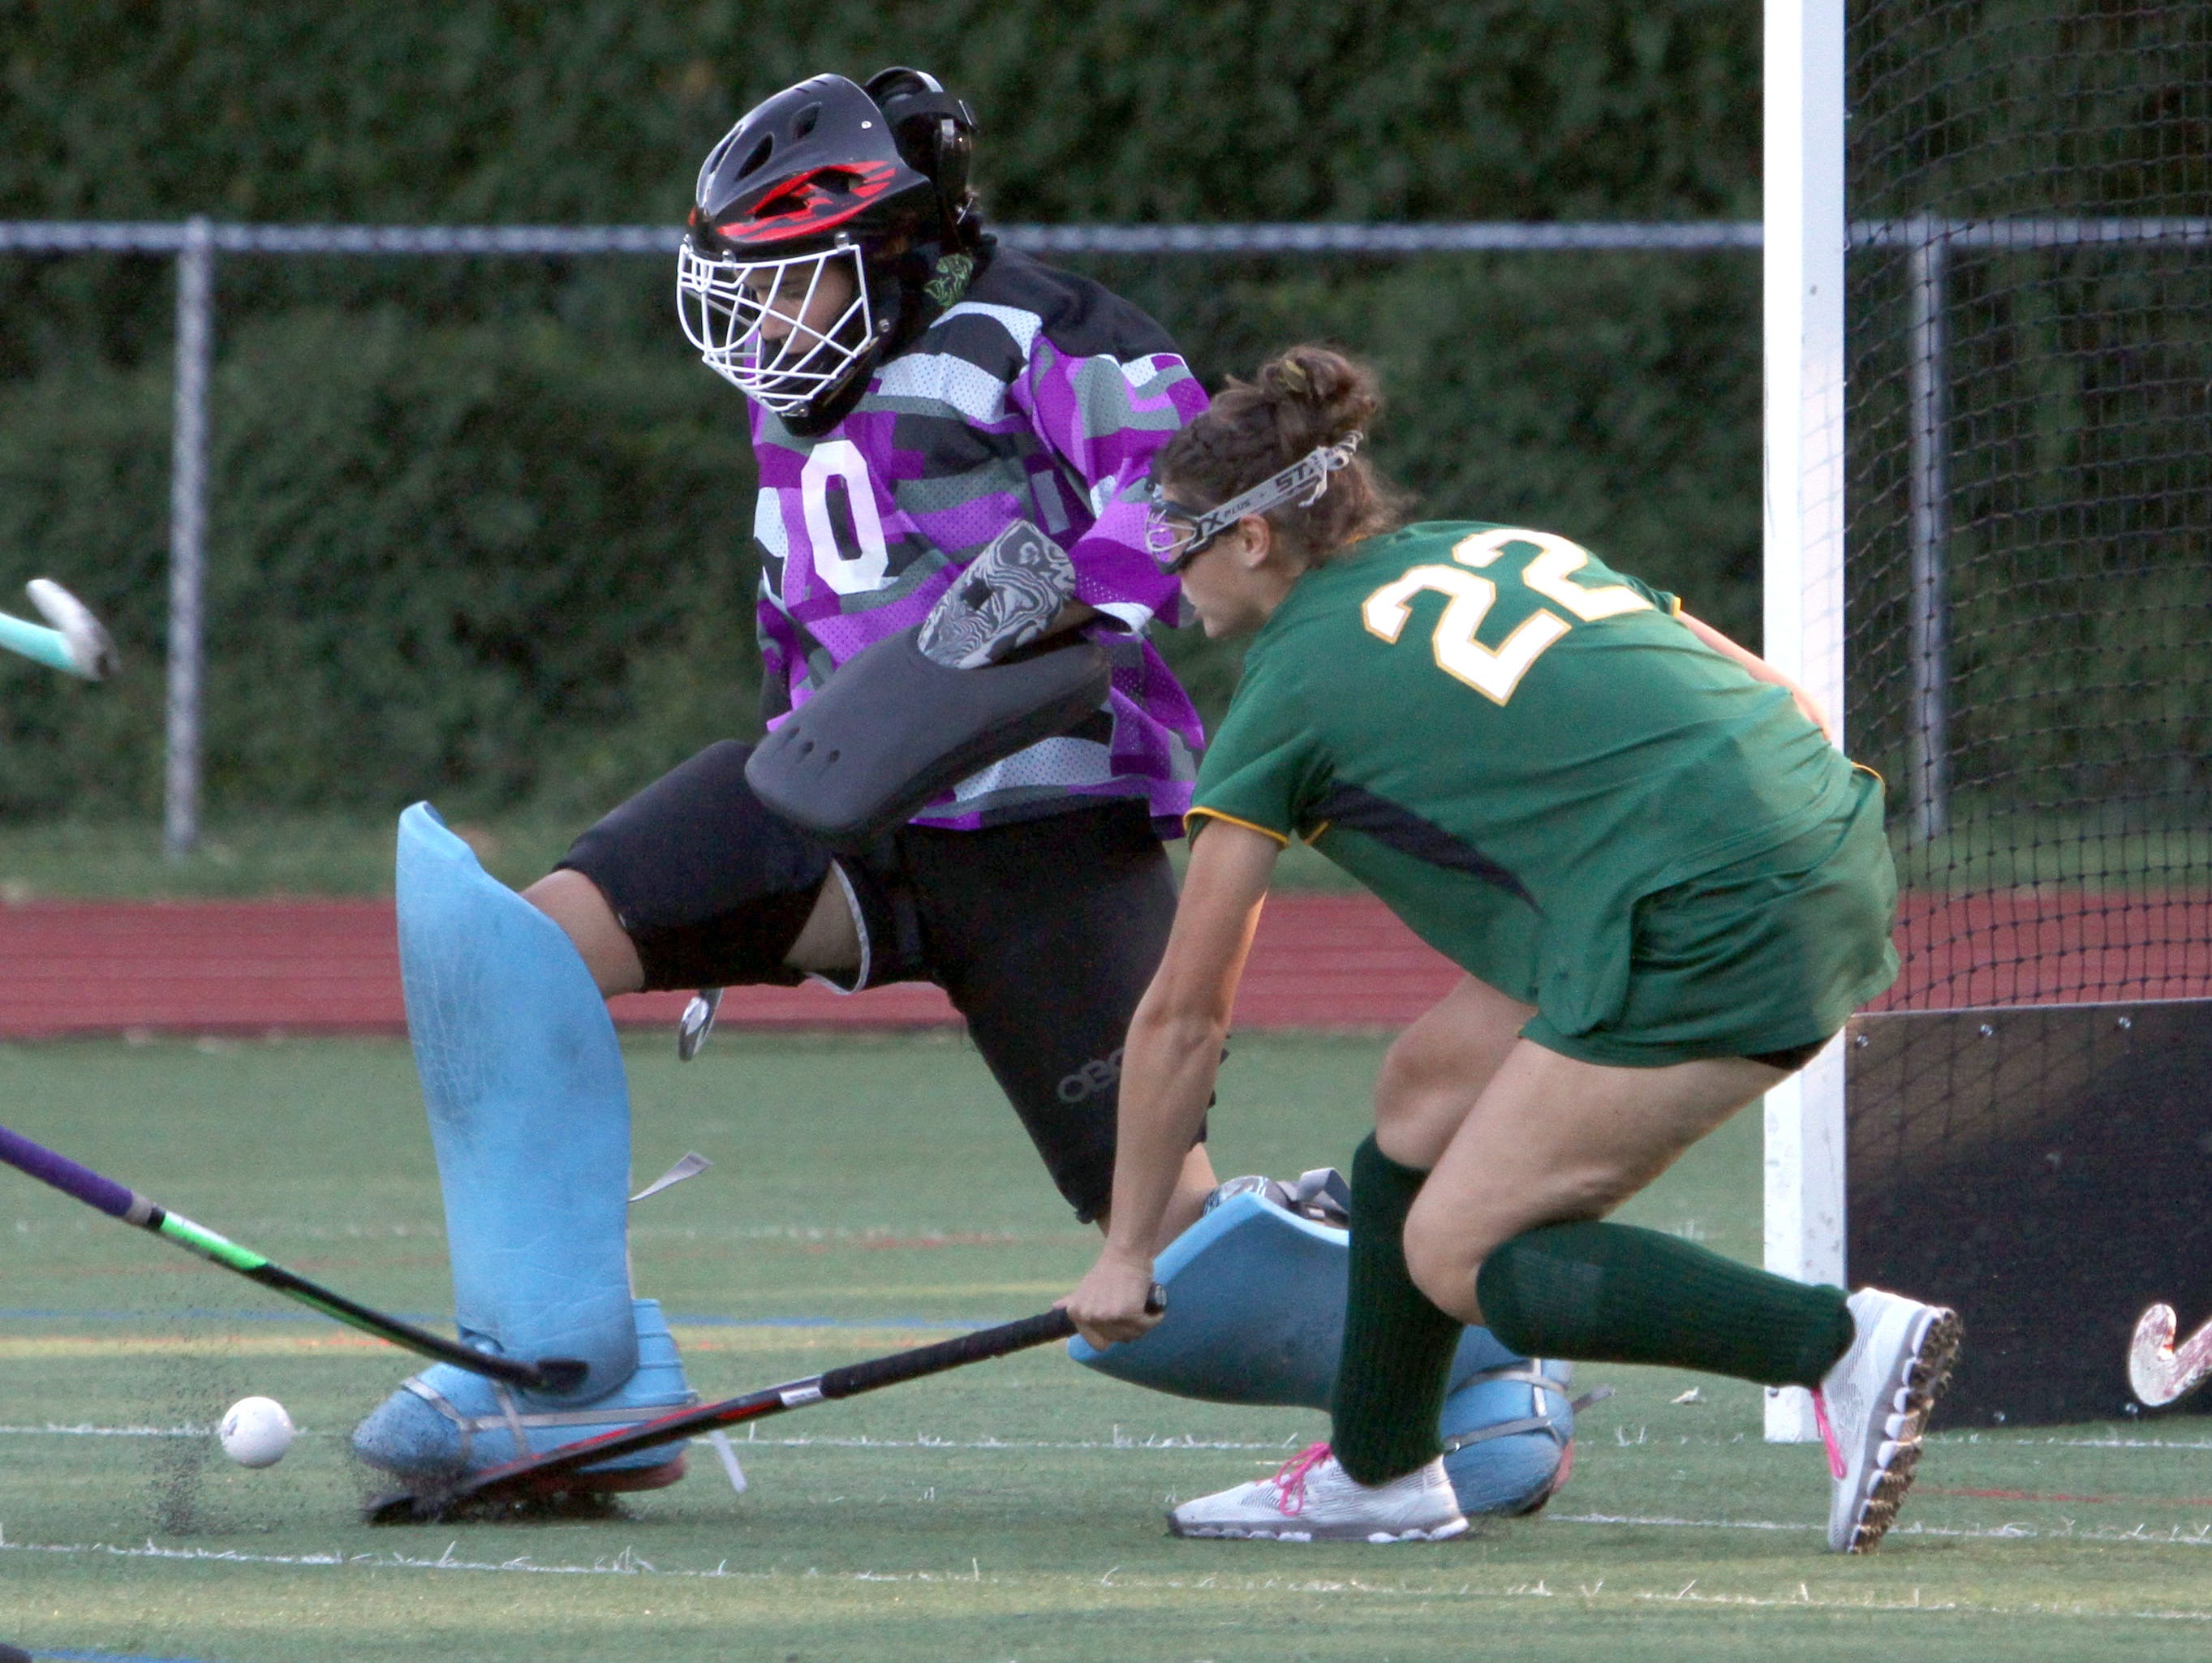 Rye goalie Maggie Devlin makes a kick save while being pressured by Lakeland's Cameron Lischinsky during a varsity field hockey game at Rye High School Sept. 15, 2016. Lakeland defeated Rye 3-1.